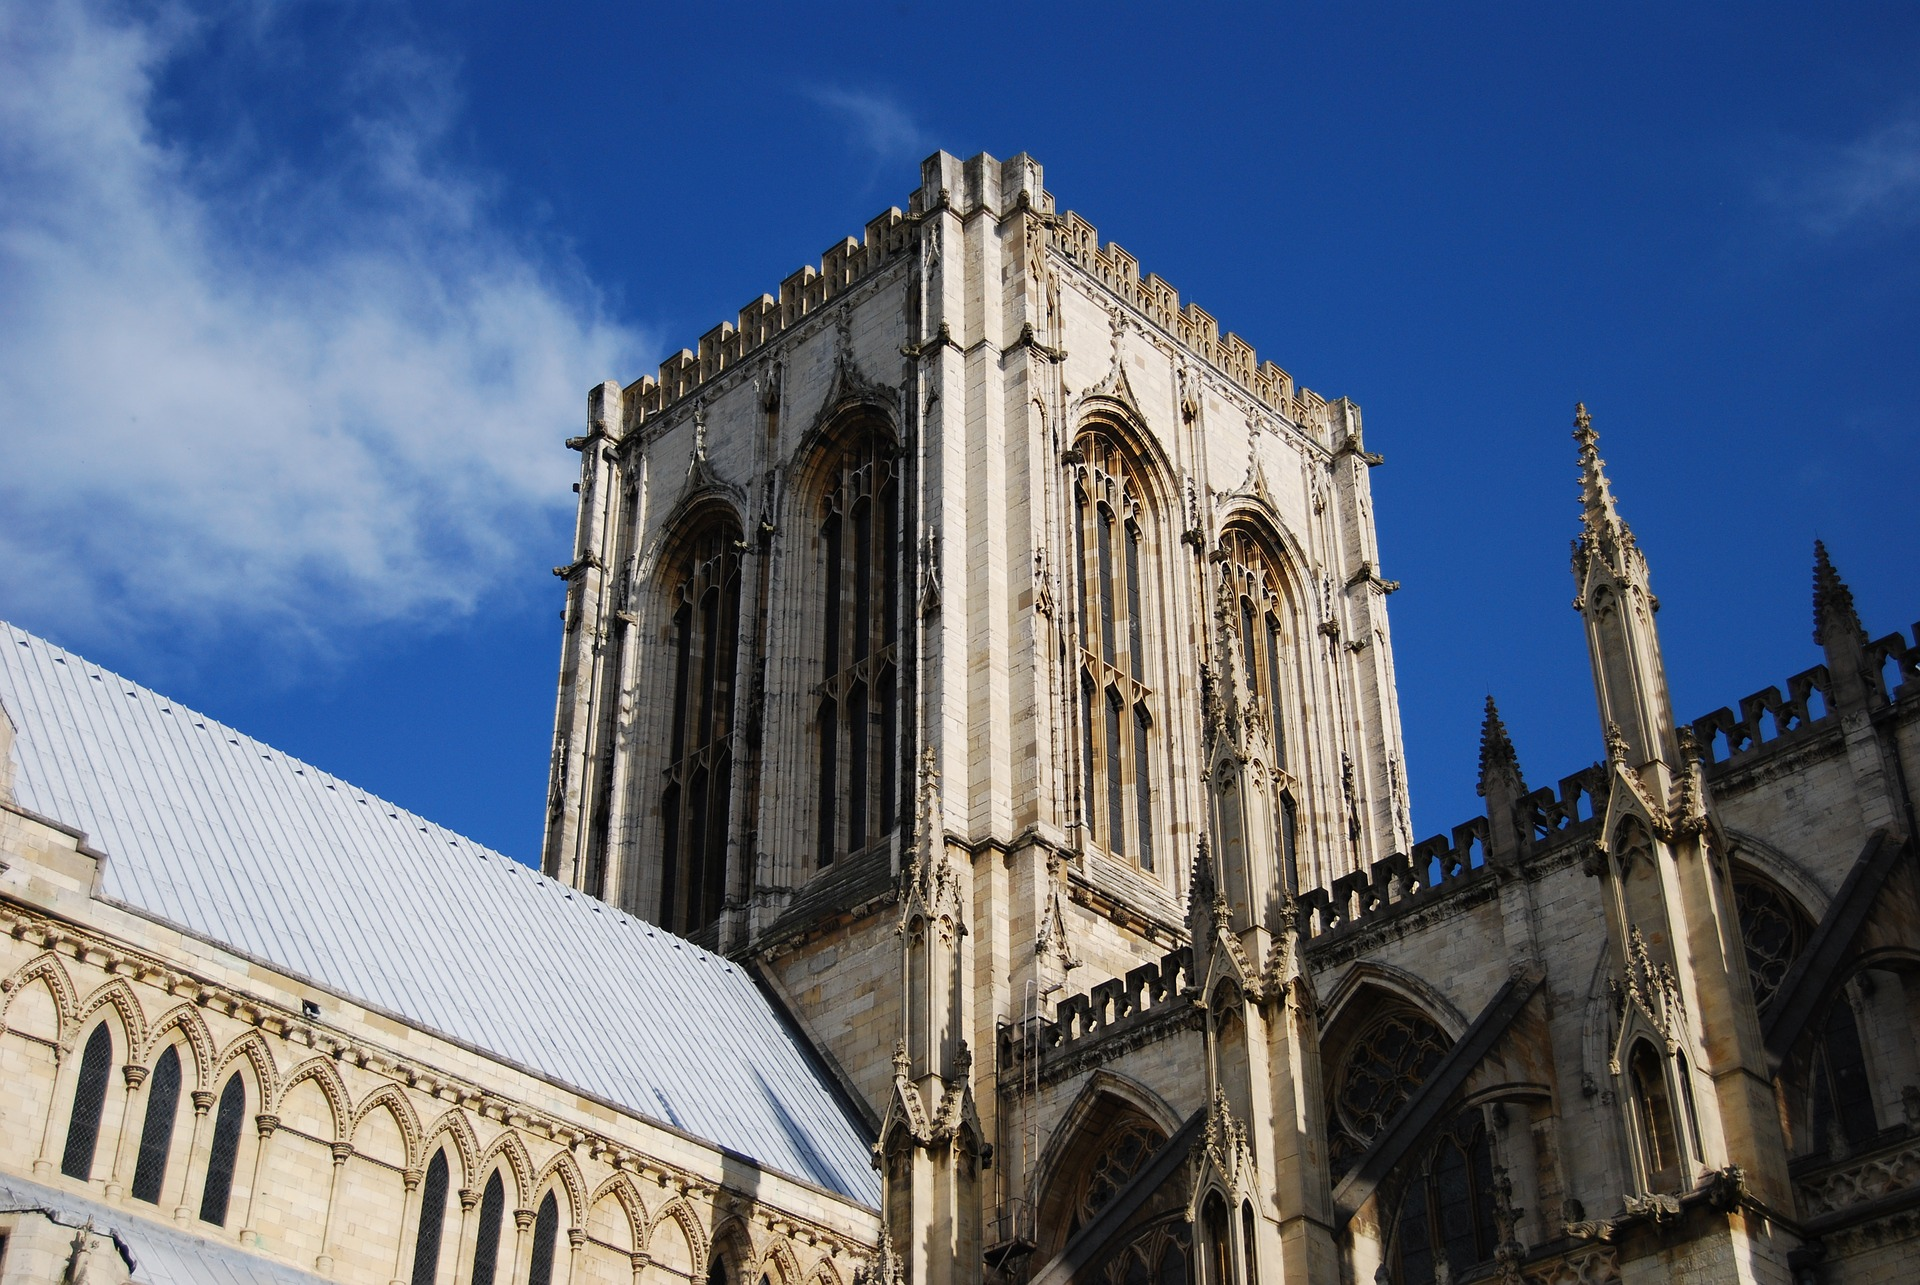 york minster price york minster events york minster history york minster facts york minster fire york minster tower york minster evensong york minster wiki